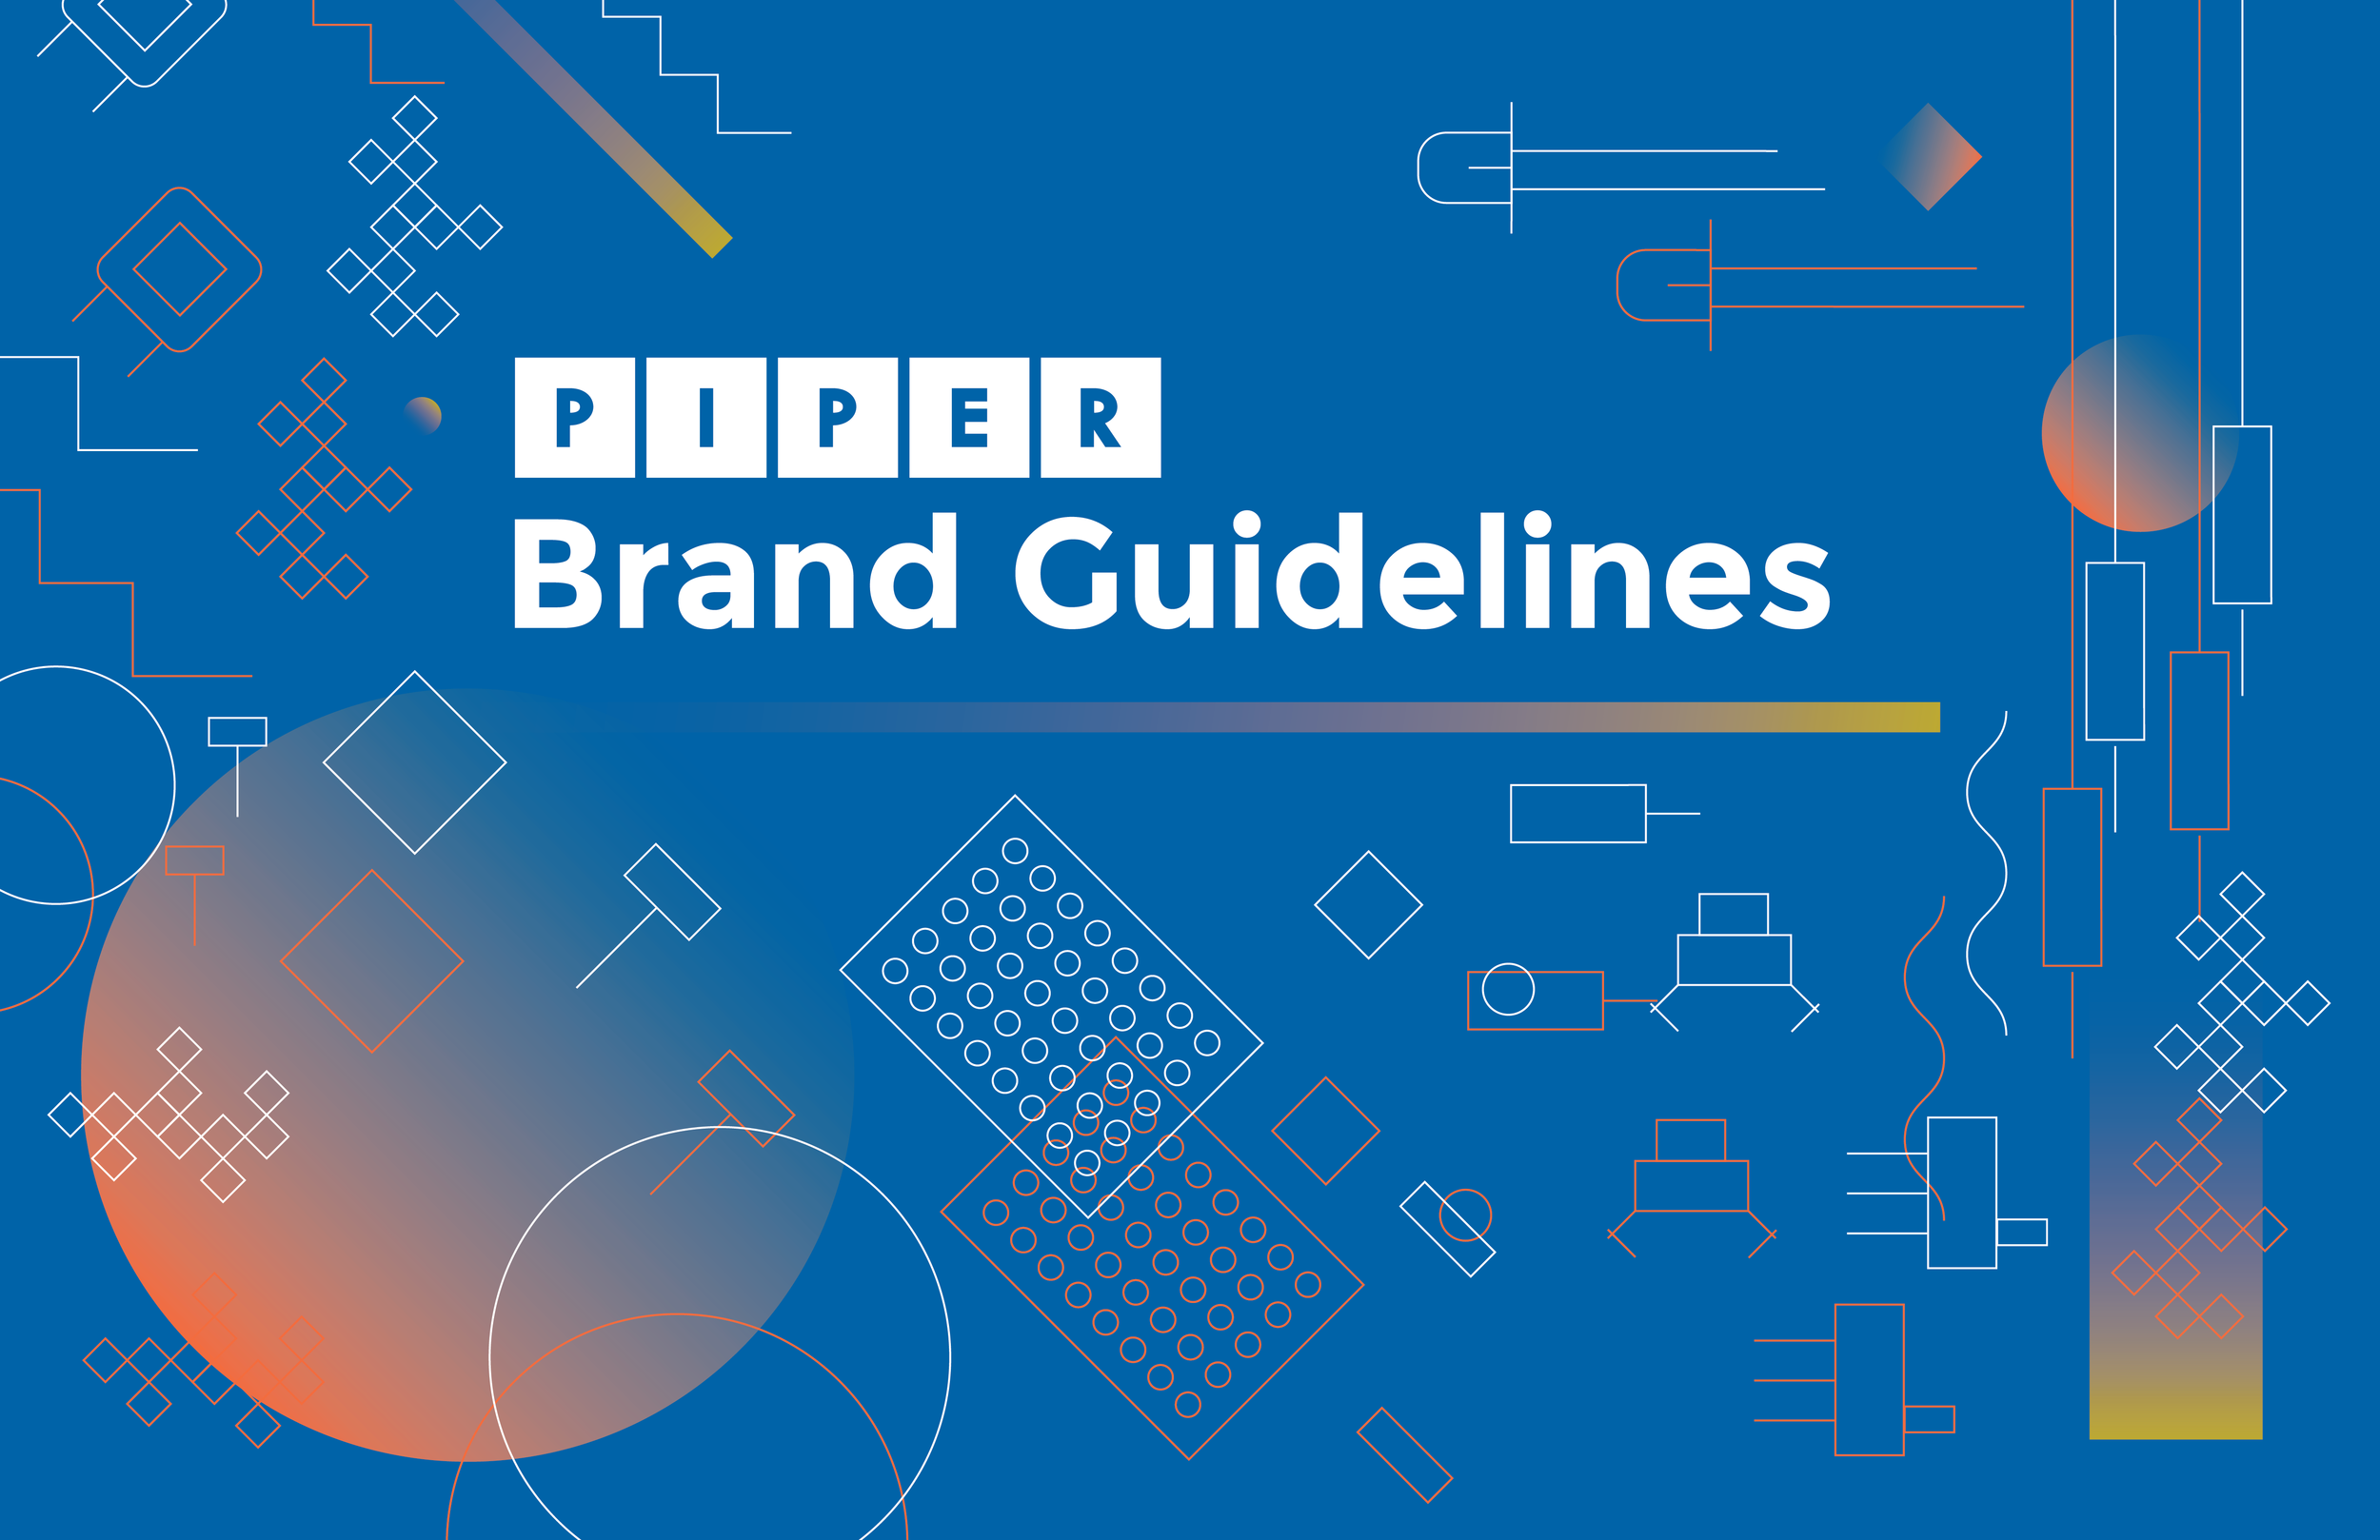 Piper_BrandGuideline_20190423_AB-59.png